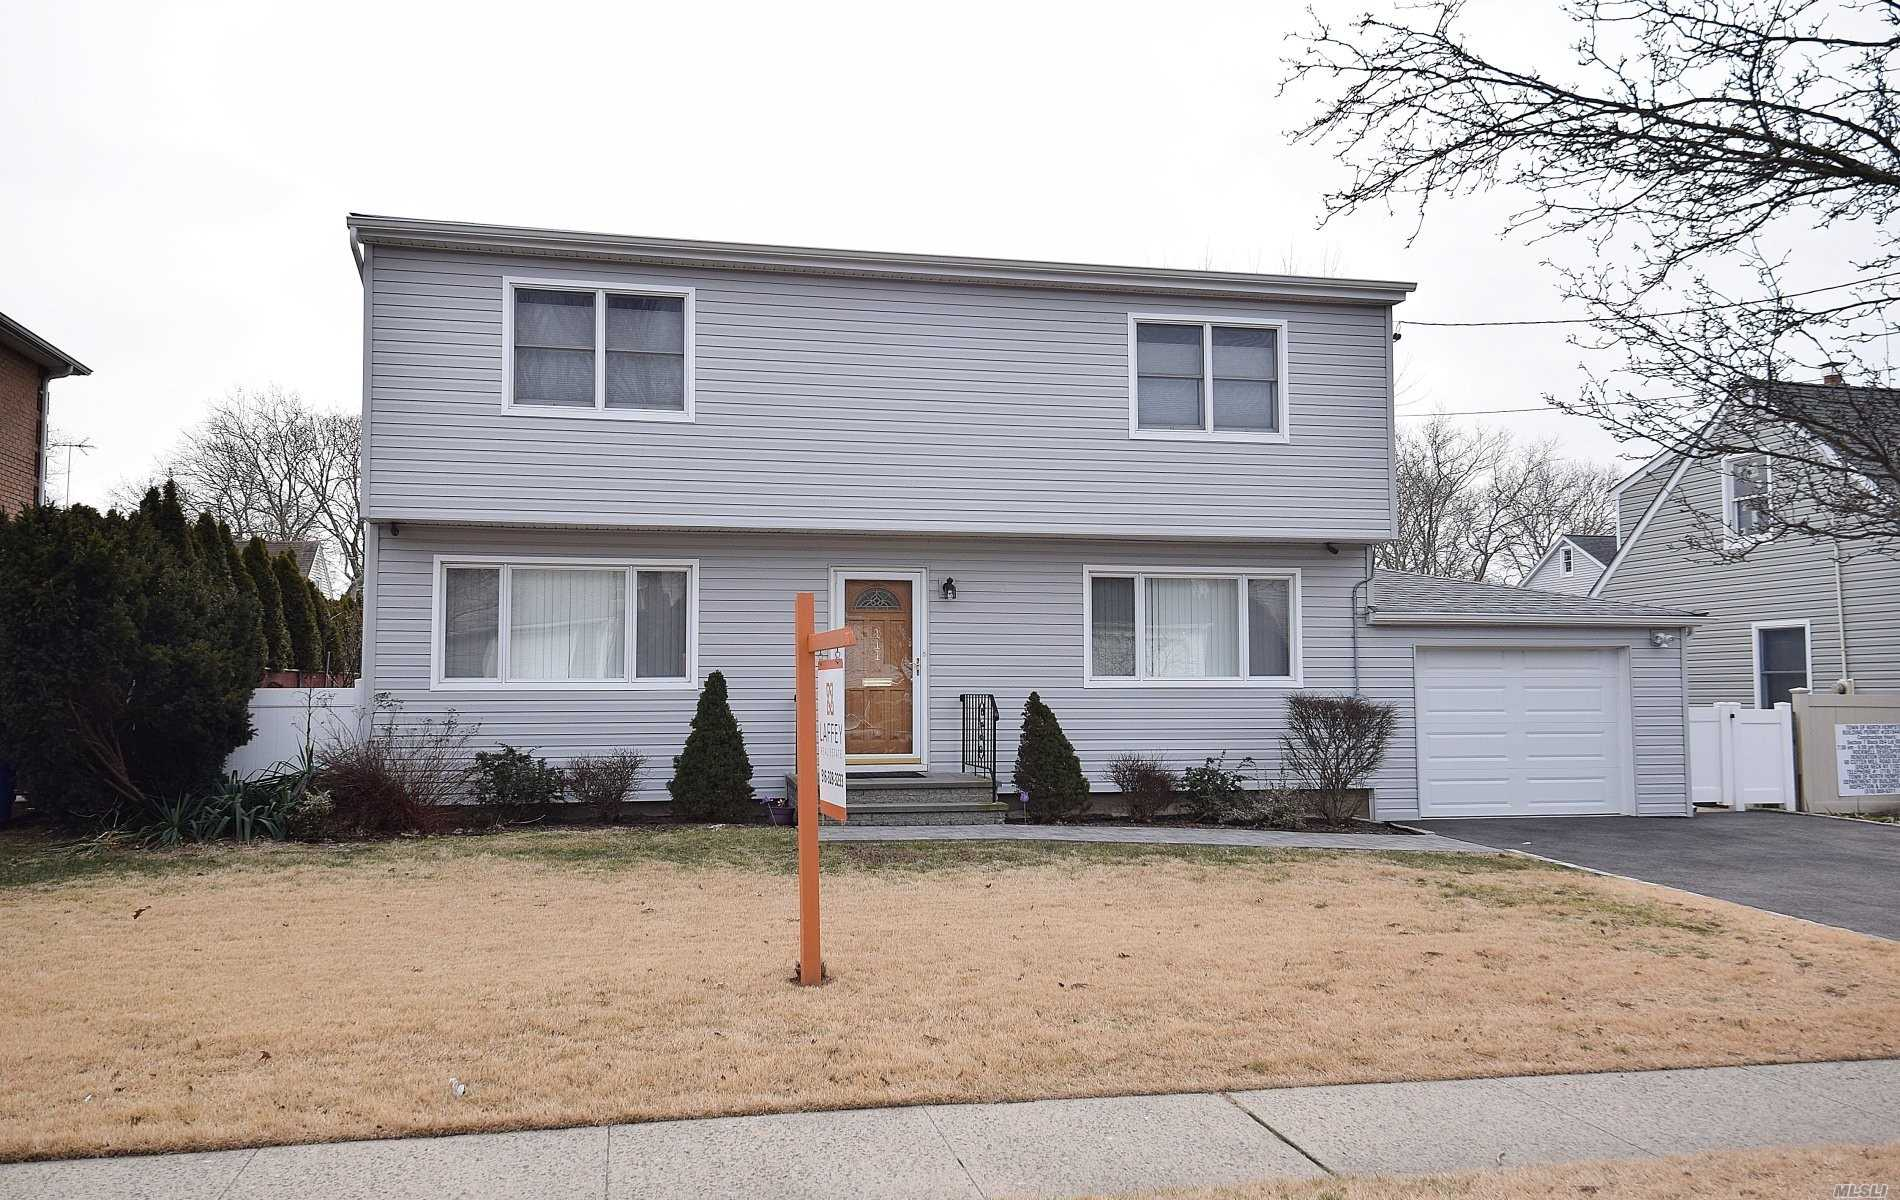 Newly Renovated Spacious Colonial 4 Bedroom, 2 Full Baths. Finished Basement, Cac, Herricks School/Searingtown Elementary. Near School And Easy Access To Highway & Lirr.